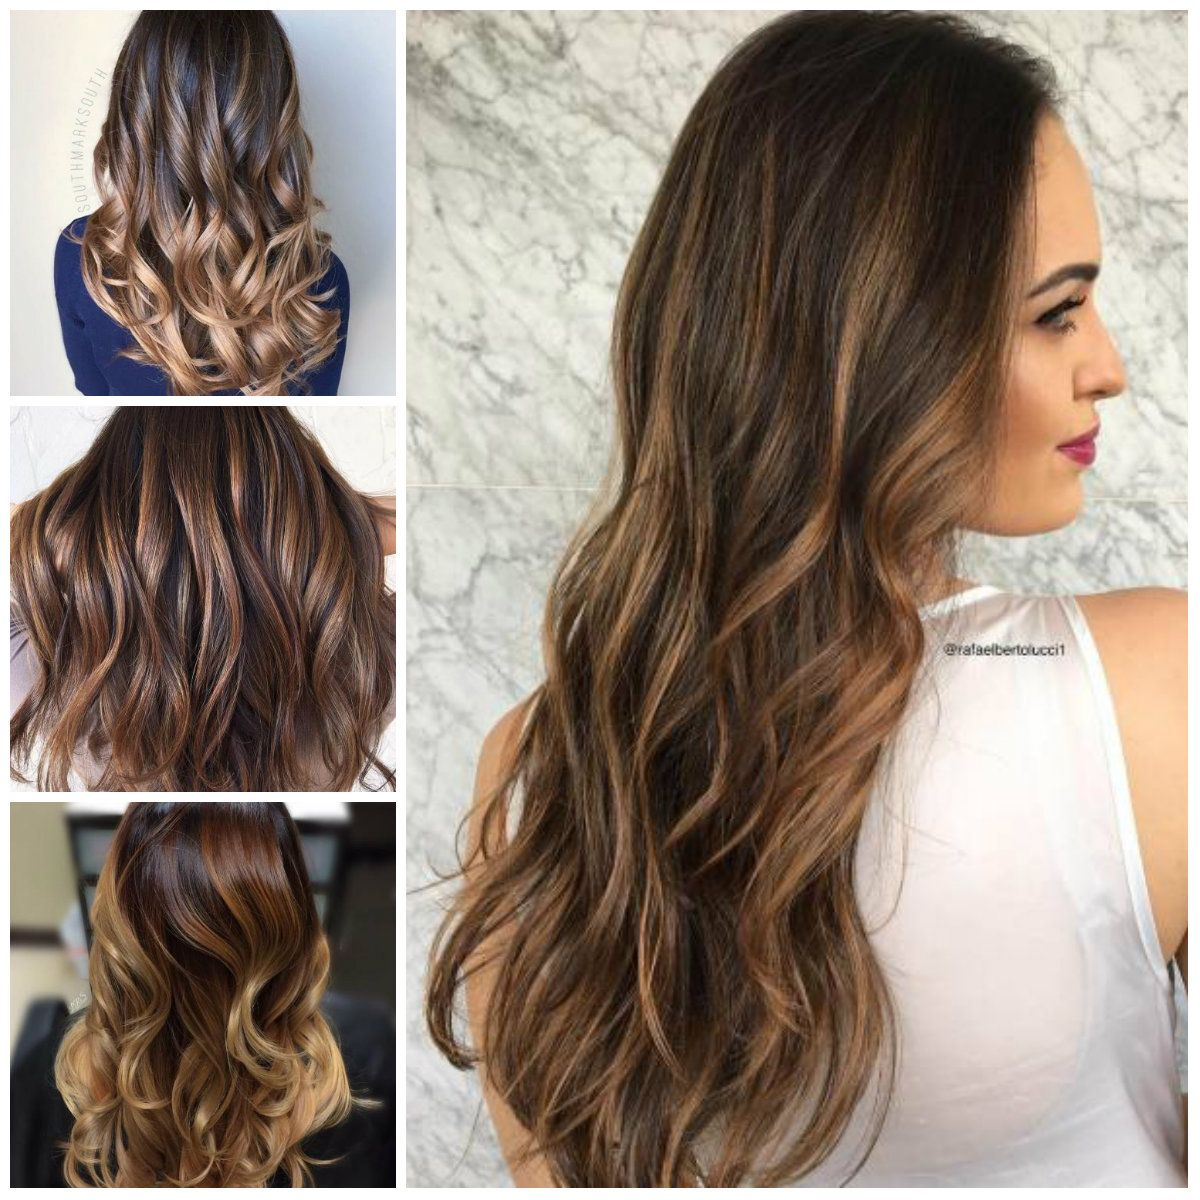 Hair Color Trends 2017 | Haircuts, Hairstyles 2016 / 2017 and Hair ...